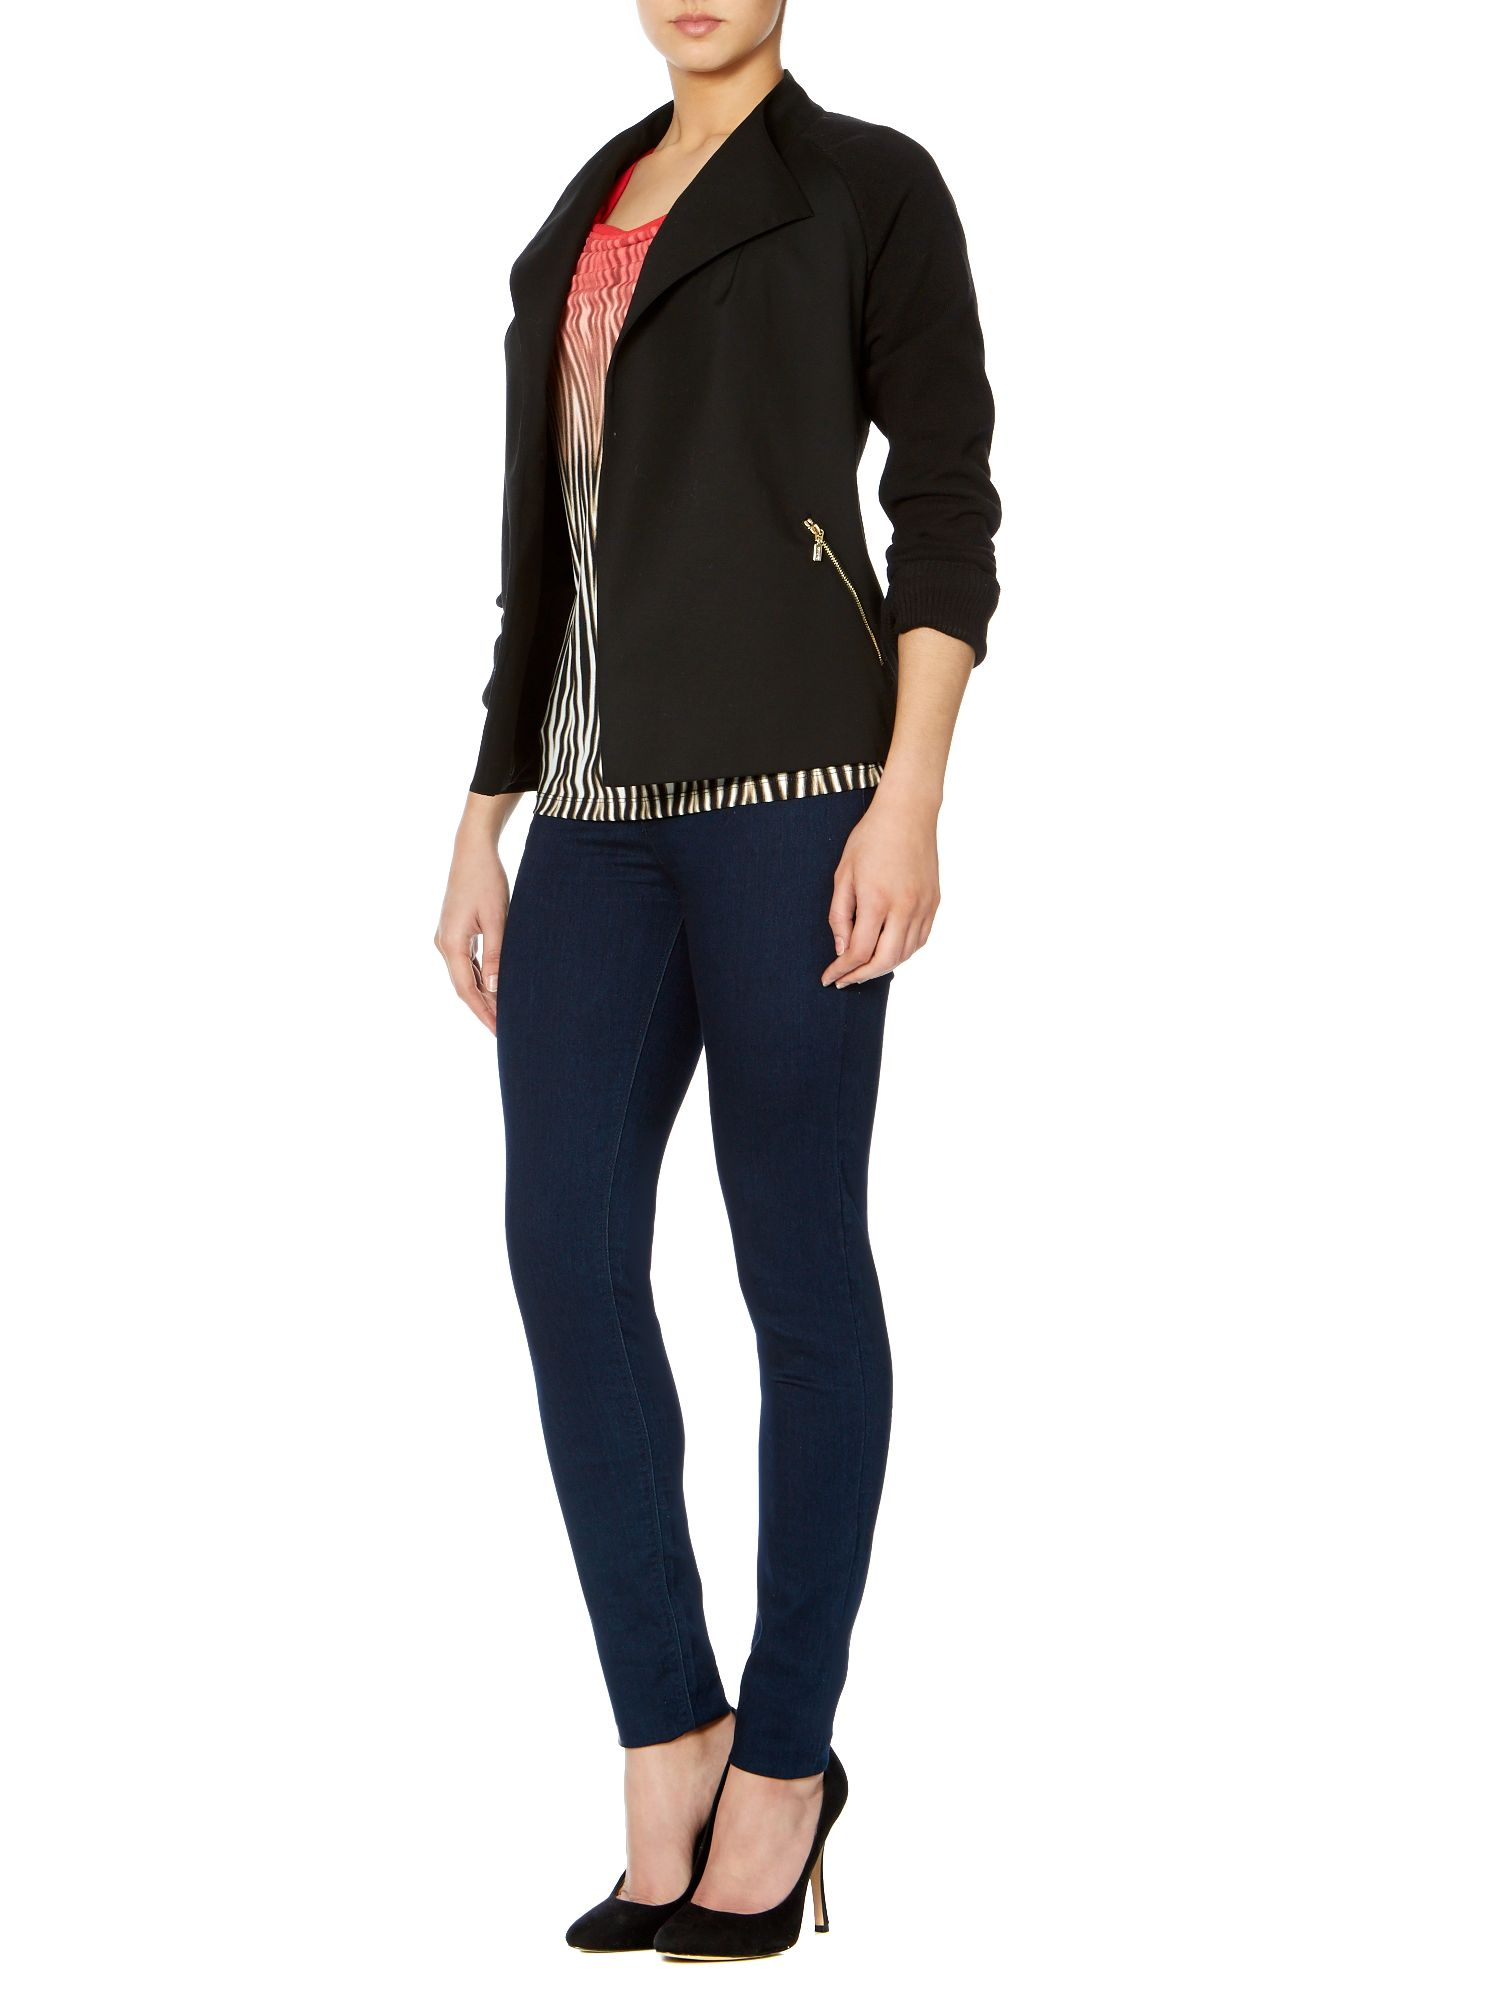 Waterfall zip jacket